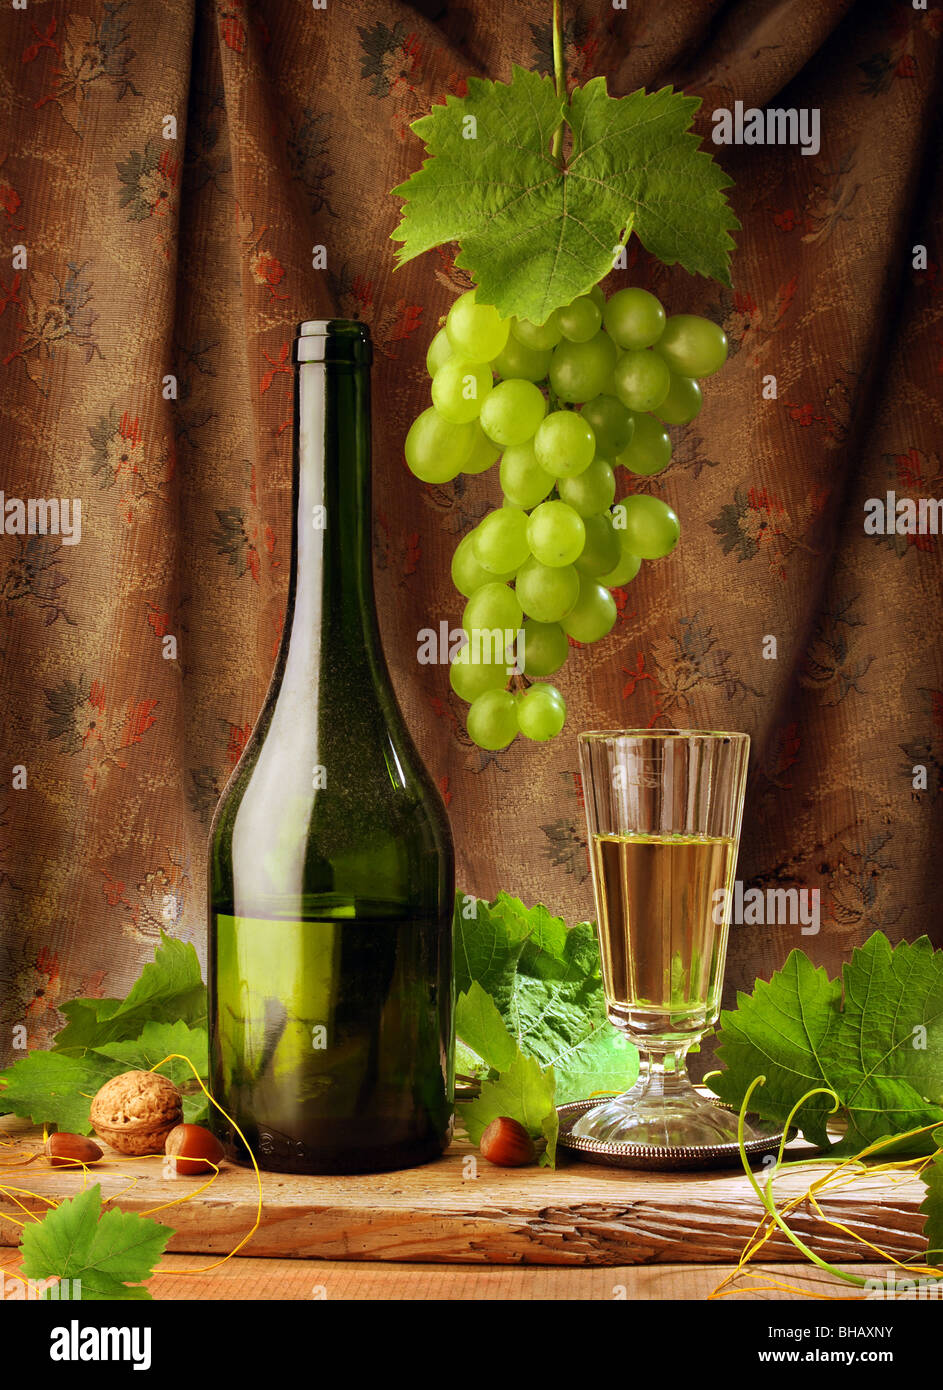 wine still life in vintage style with white wine bottle